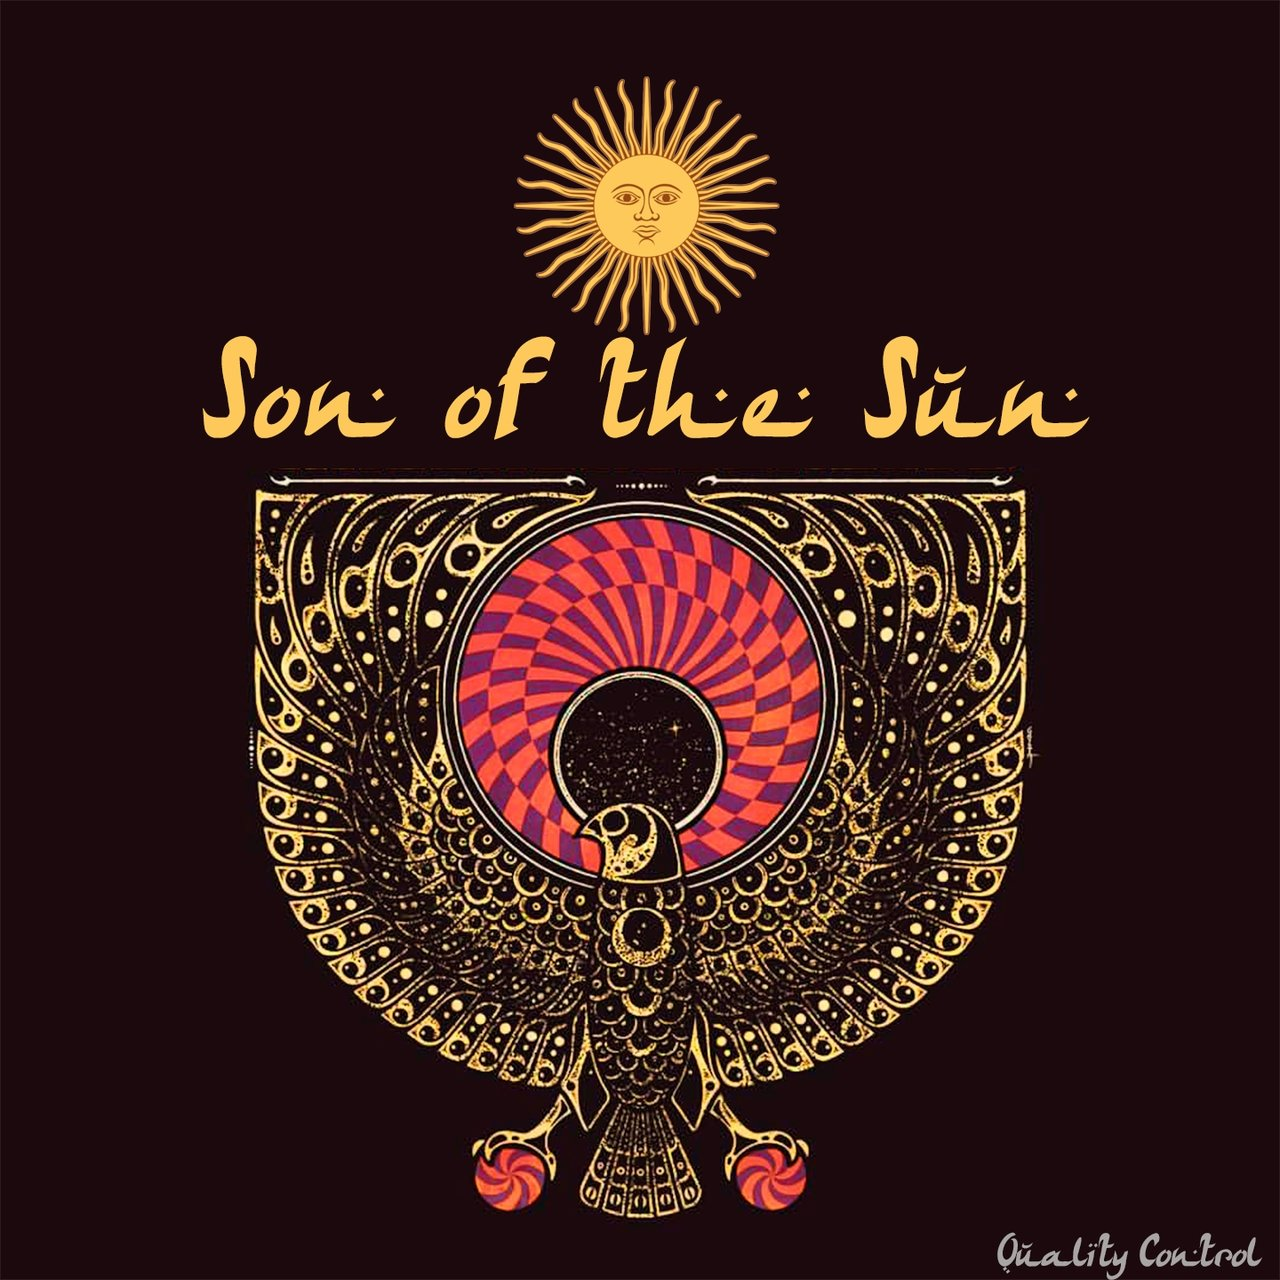 Son of the Sun